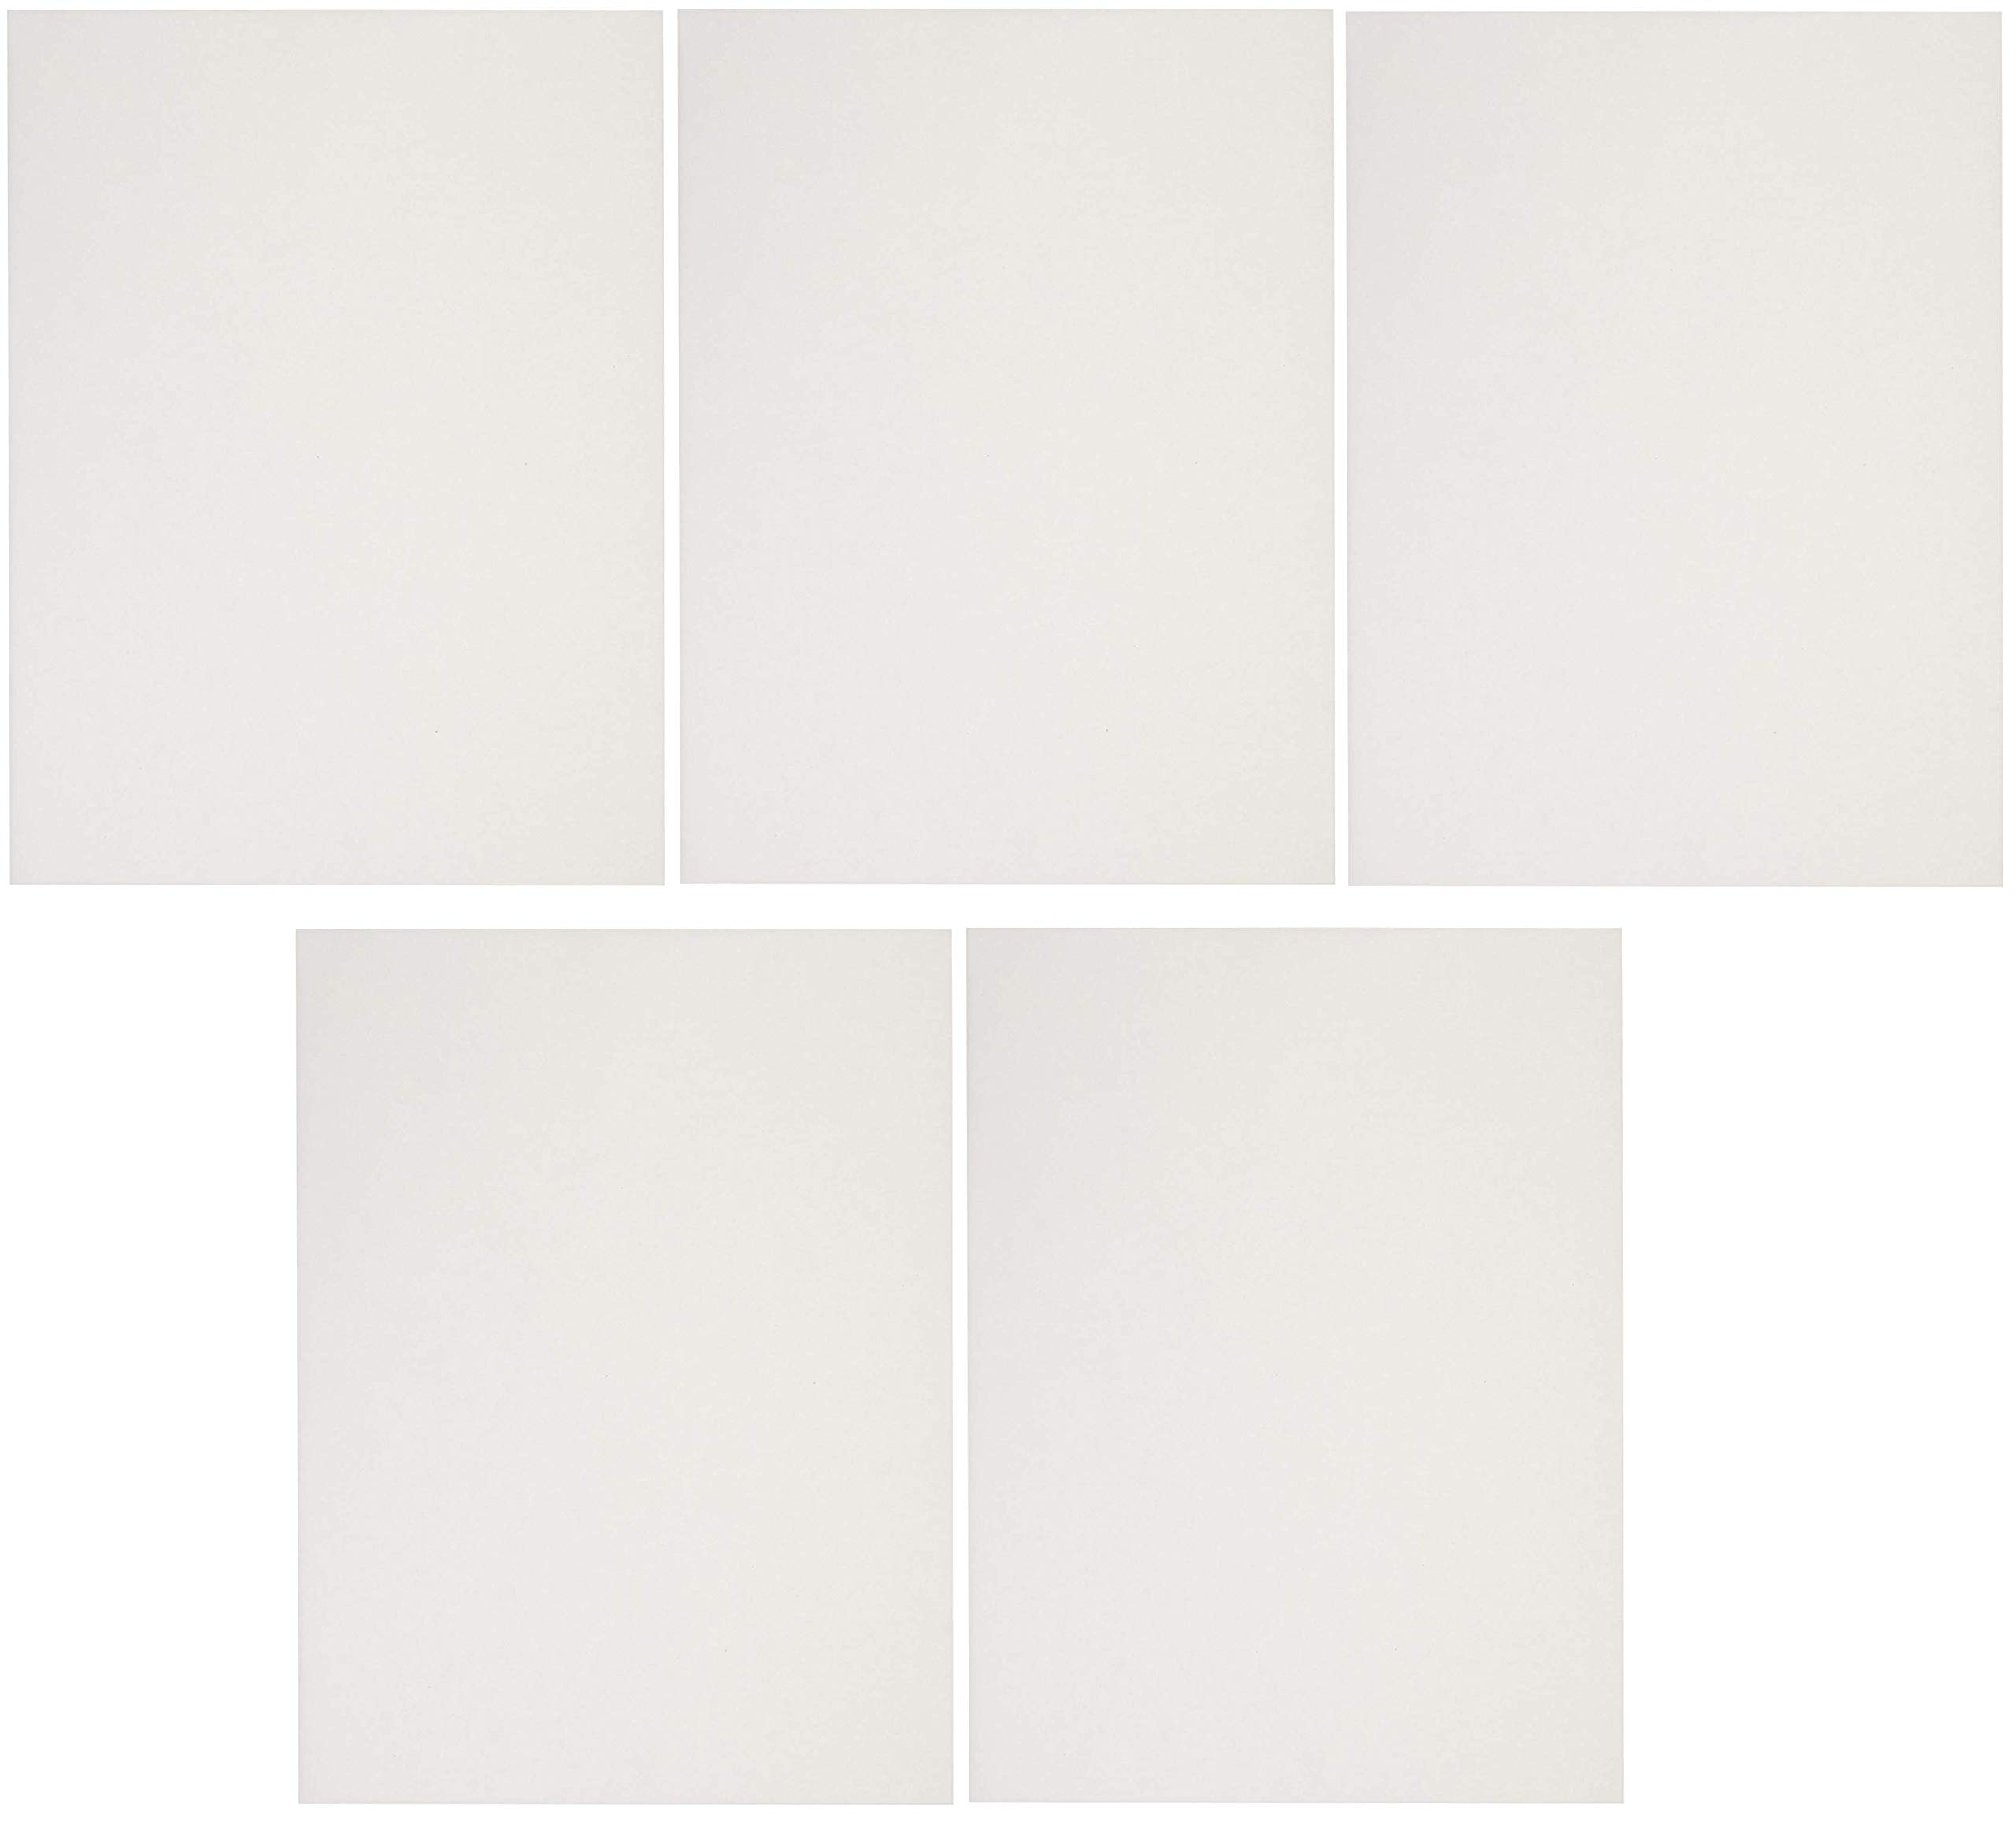 Sax Sulphite Drawing Paper, 70 lb, 12 x 18 Inches, Extra-White, Pack of 500 (Вundlе оf Fіvе)